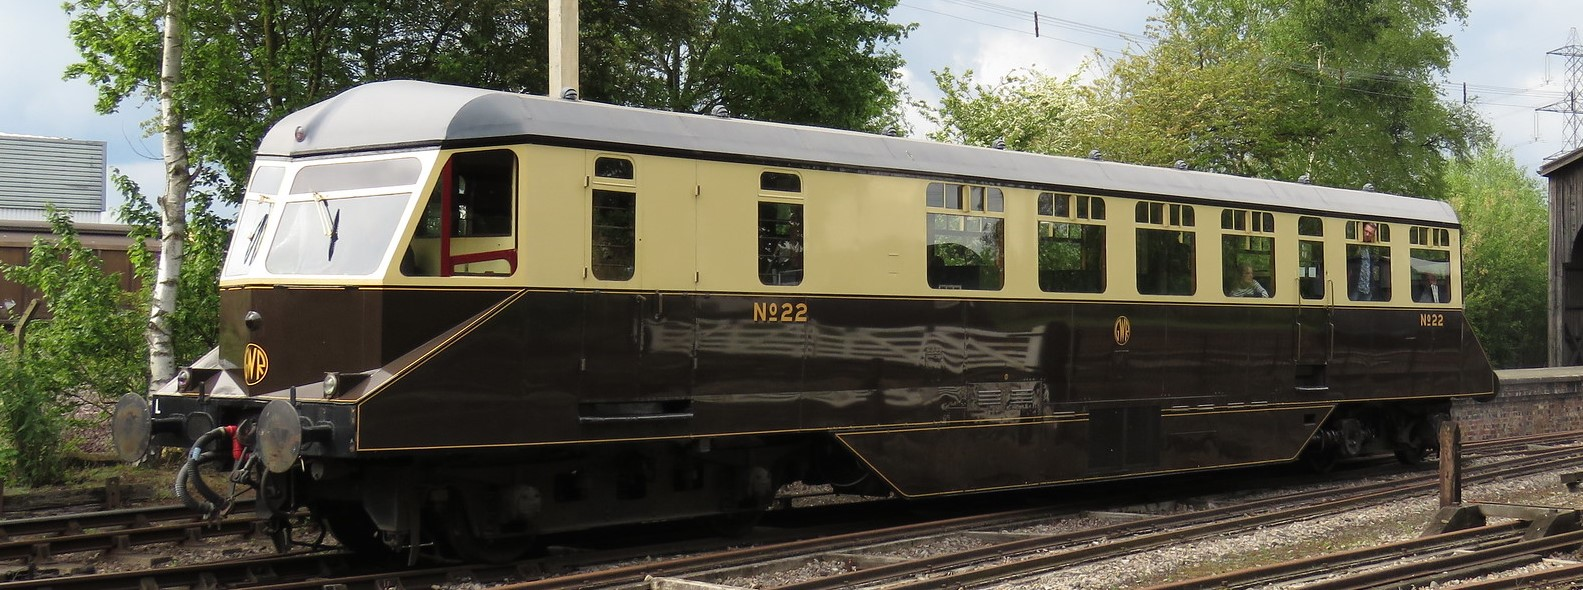 GWR Railcar No.22 at The Didcot Railway Centre in May 2019. © Justin Foulger